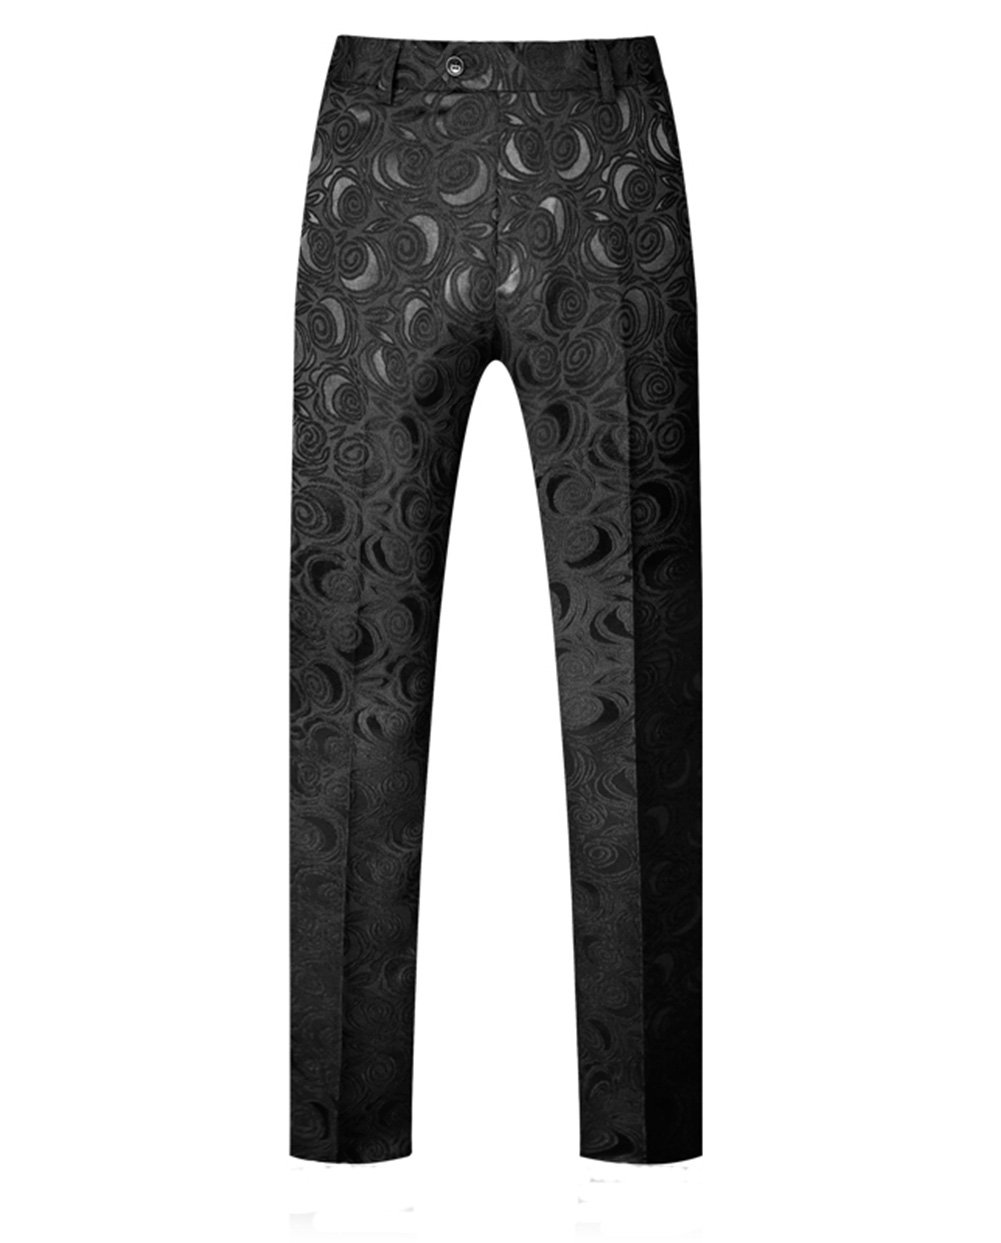 MOGU Slim-Fit Flat-Front Dress Pant 29 Waist (Label 29/M) Black